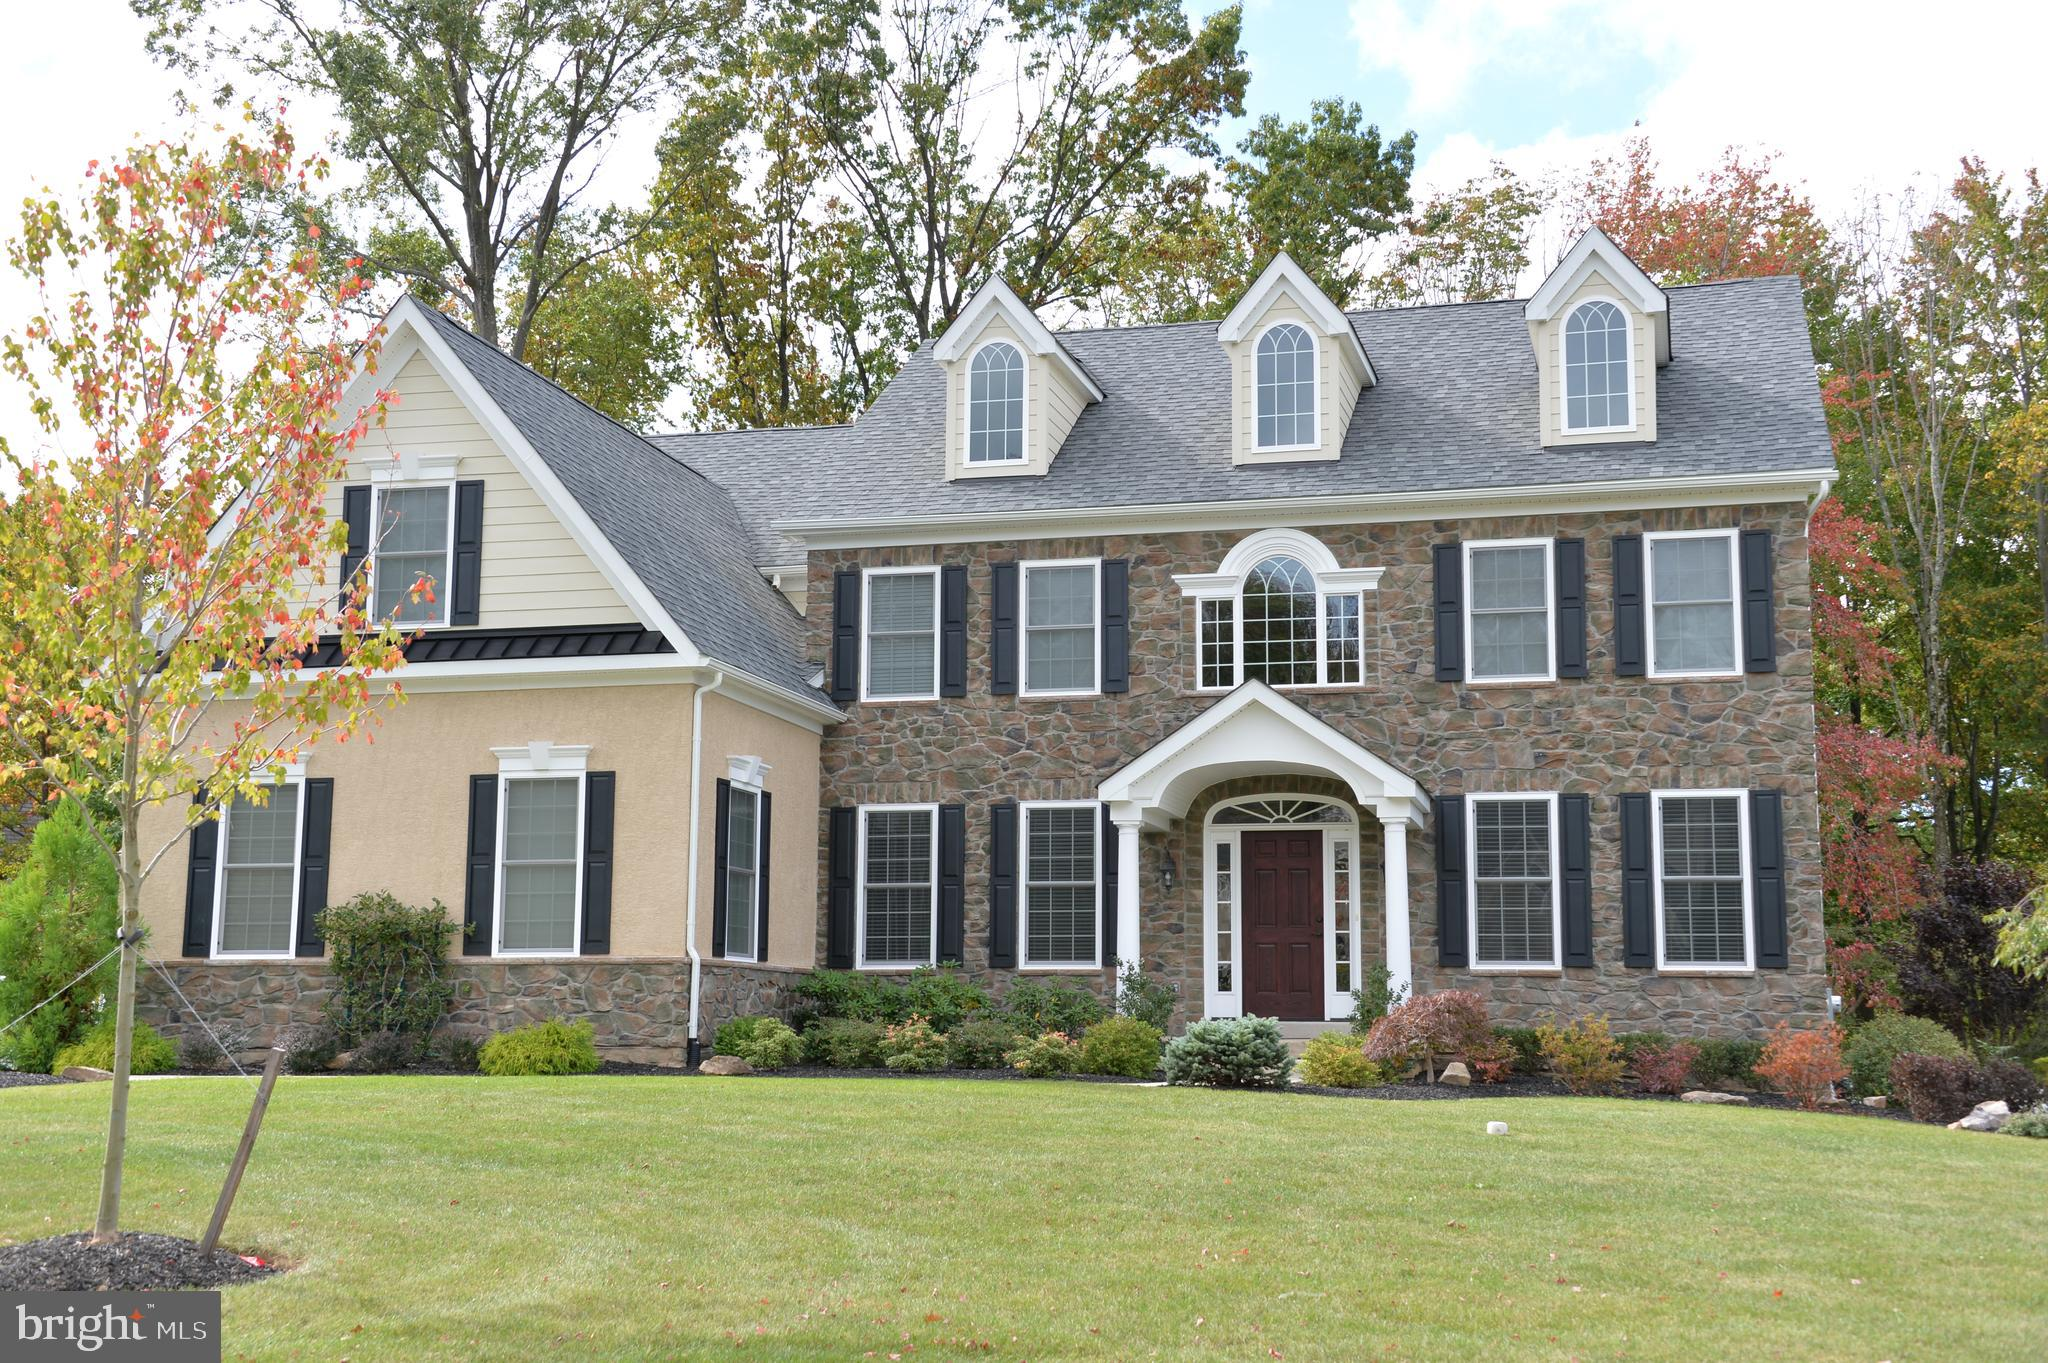 643 CATHCART ROAD, BLUE BELL, PA 19422